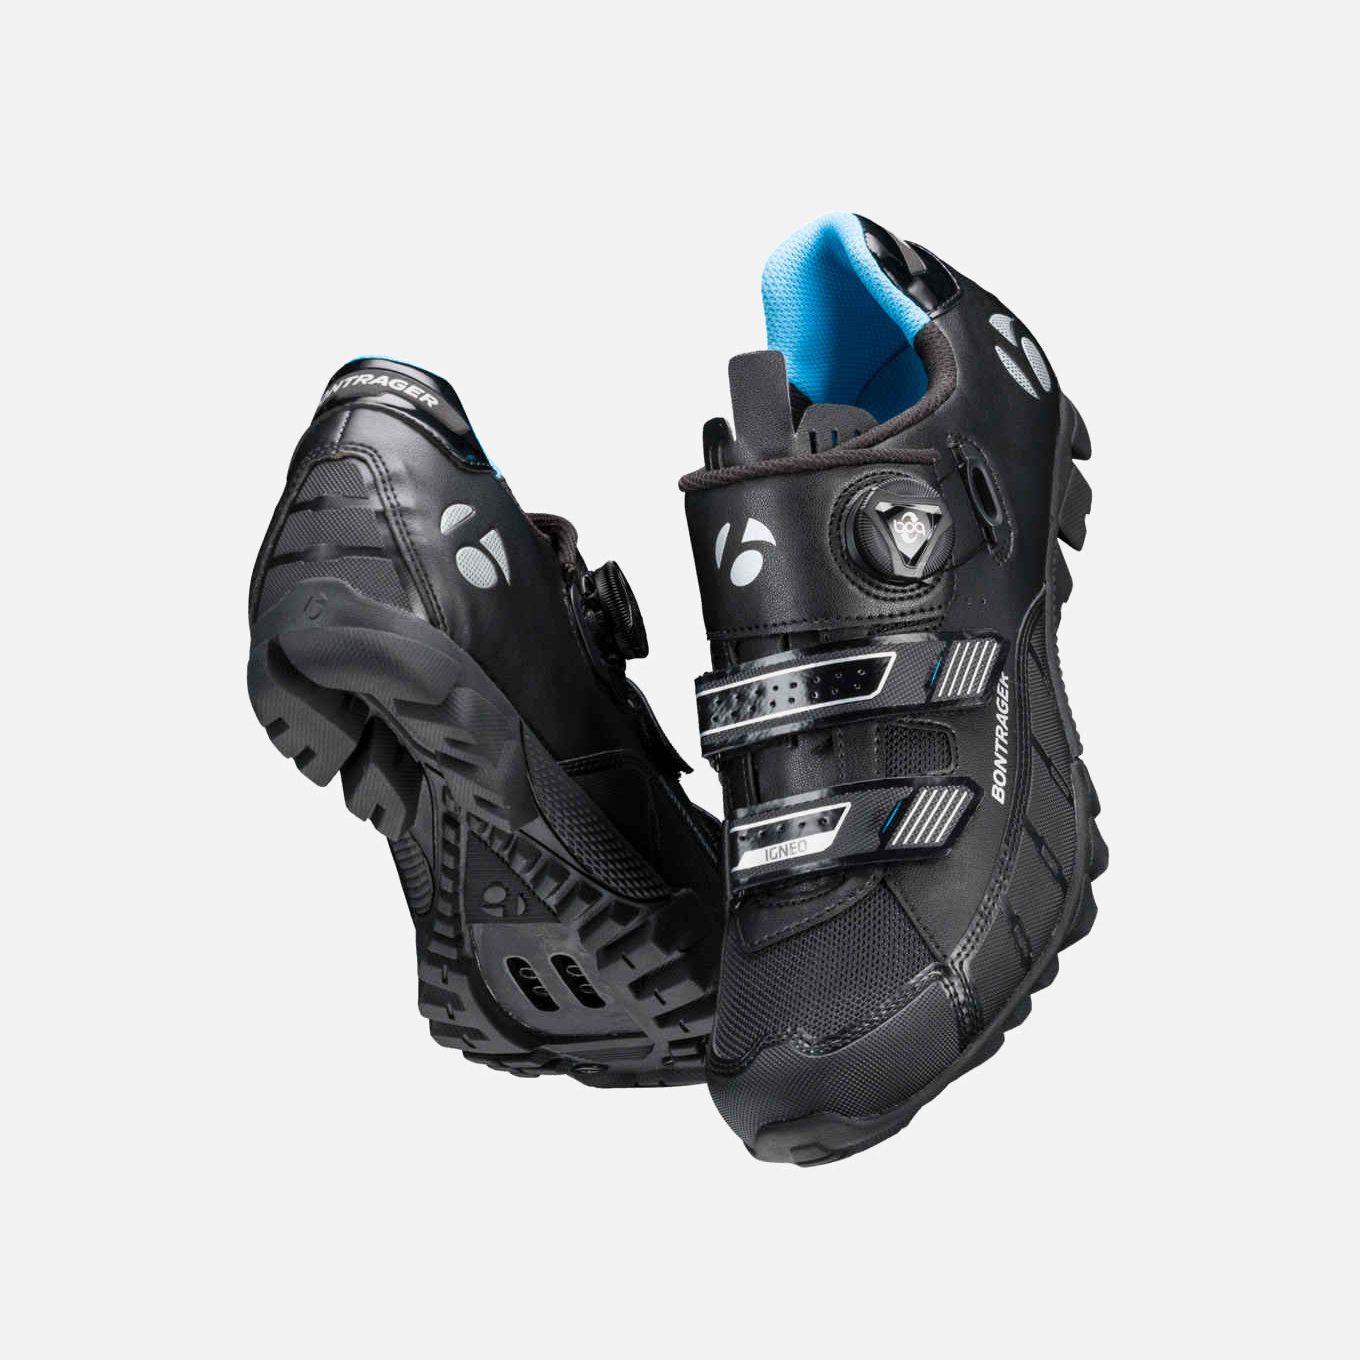 13689_A_3_Igneo_Womens_MTB_Shoe